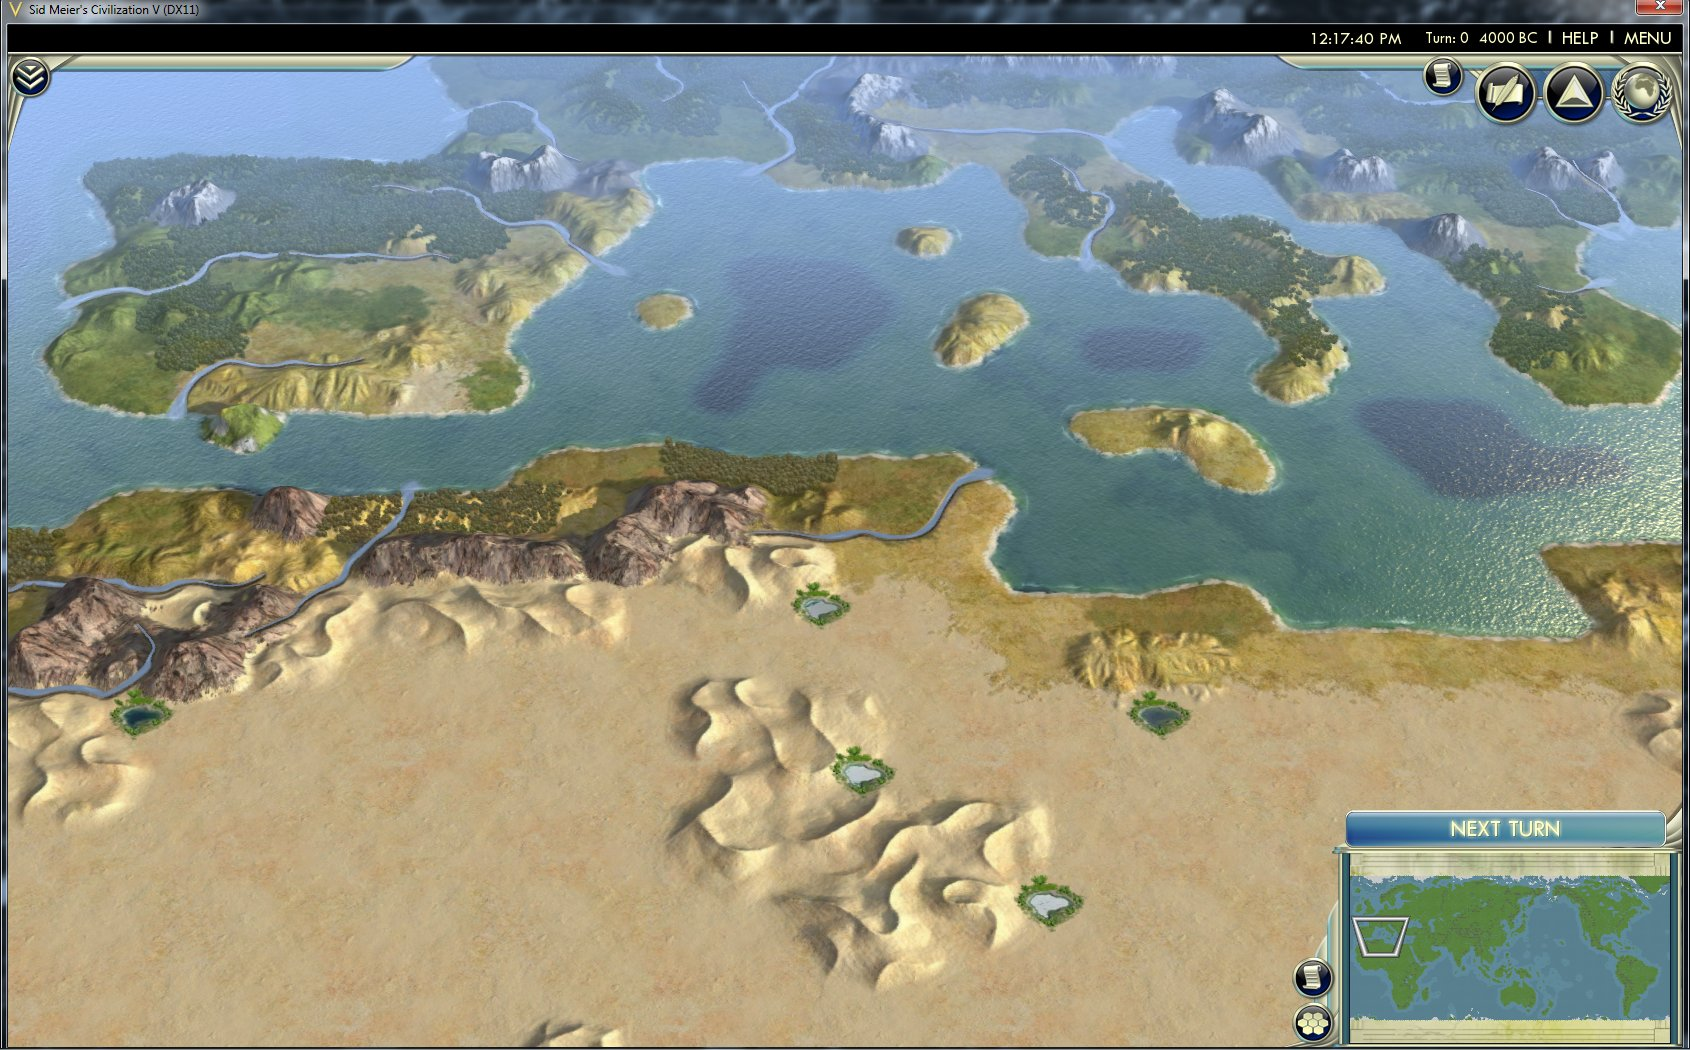 Yet Another Giant Earth Map | CivFanatics Forums on dota 2 custom map, civilization 5 europe map, minecraft custom map, skyrim custom map, league of legends custom map, portal 2 custom map, sims 3 custom map,